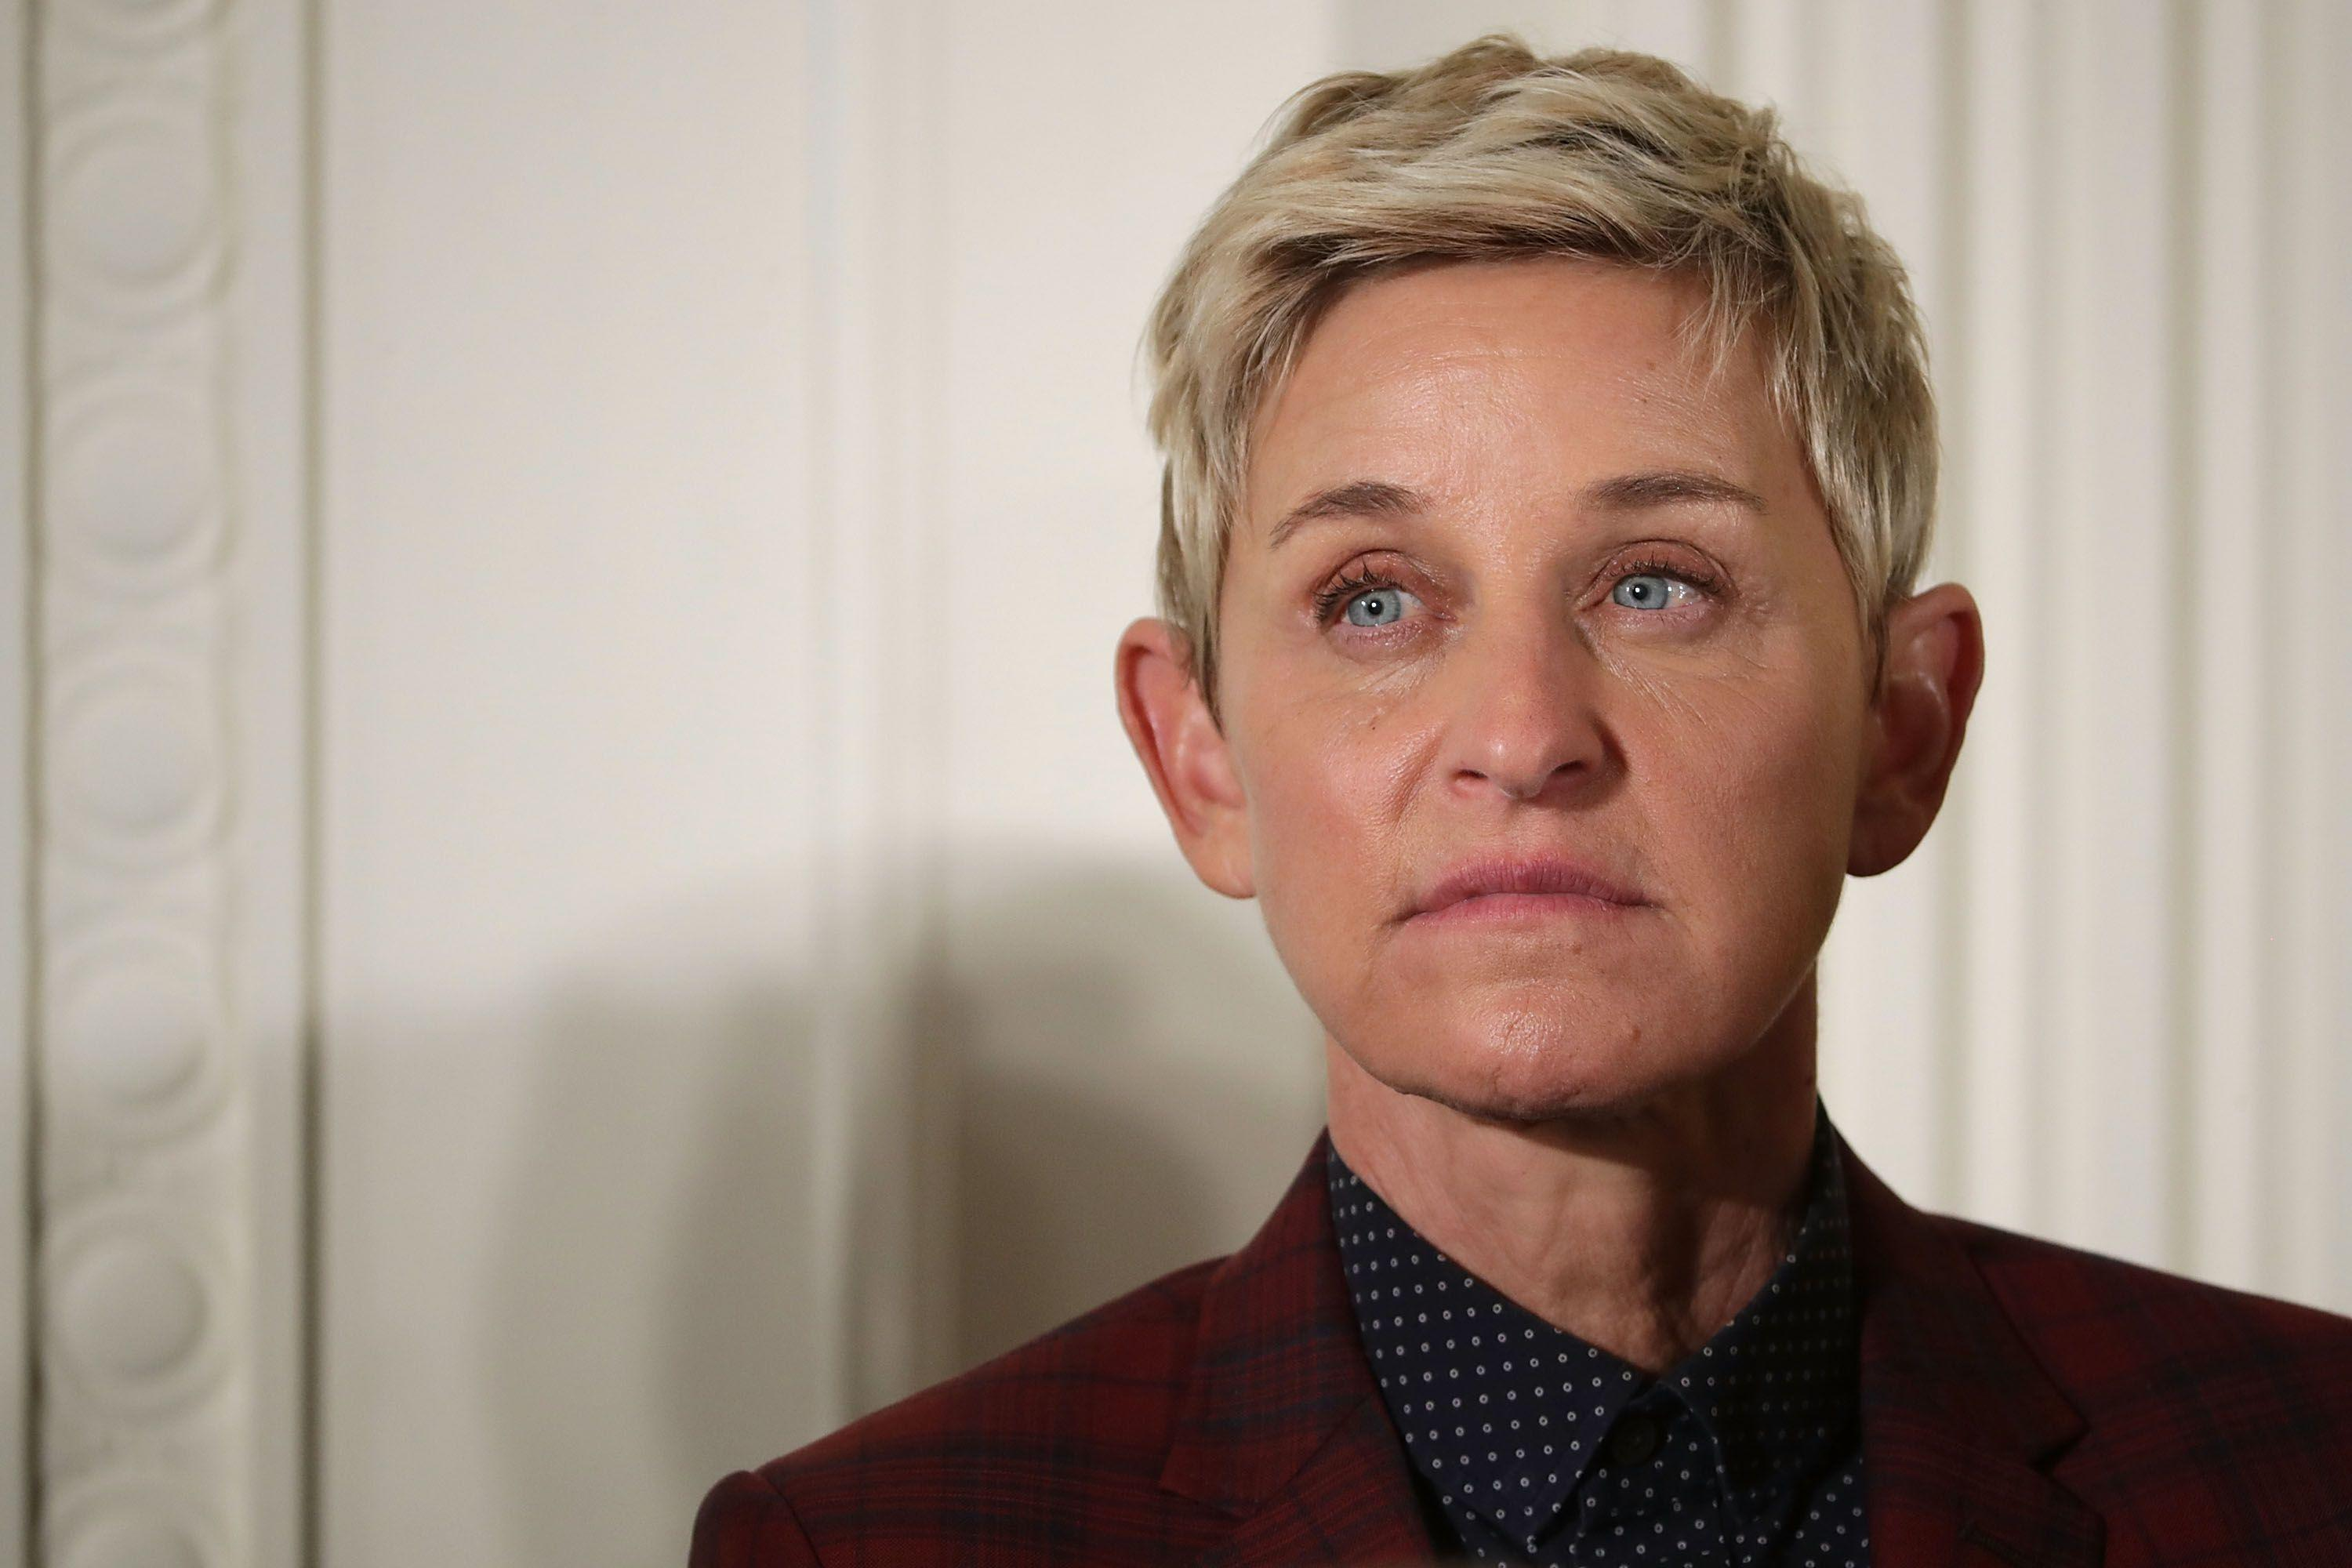 'The Ellen DeGeneres Show' under workplace investigation following claims of mistreatment: report